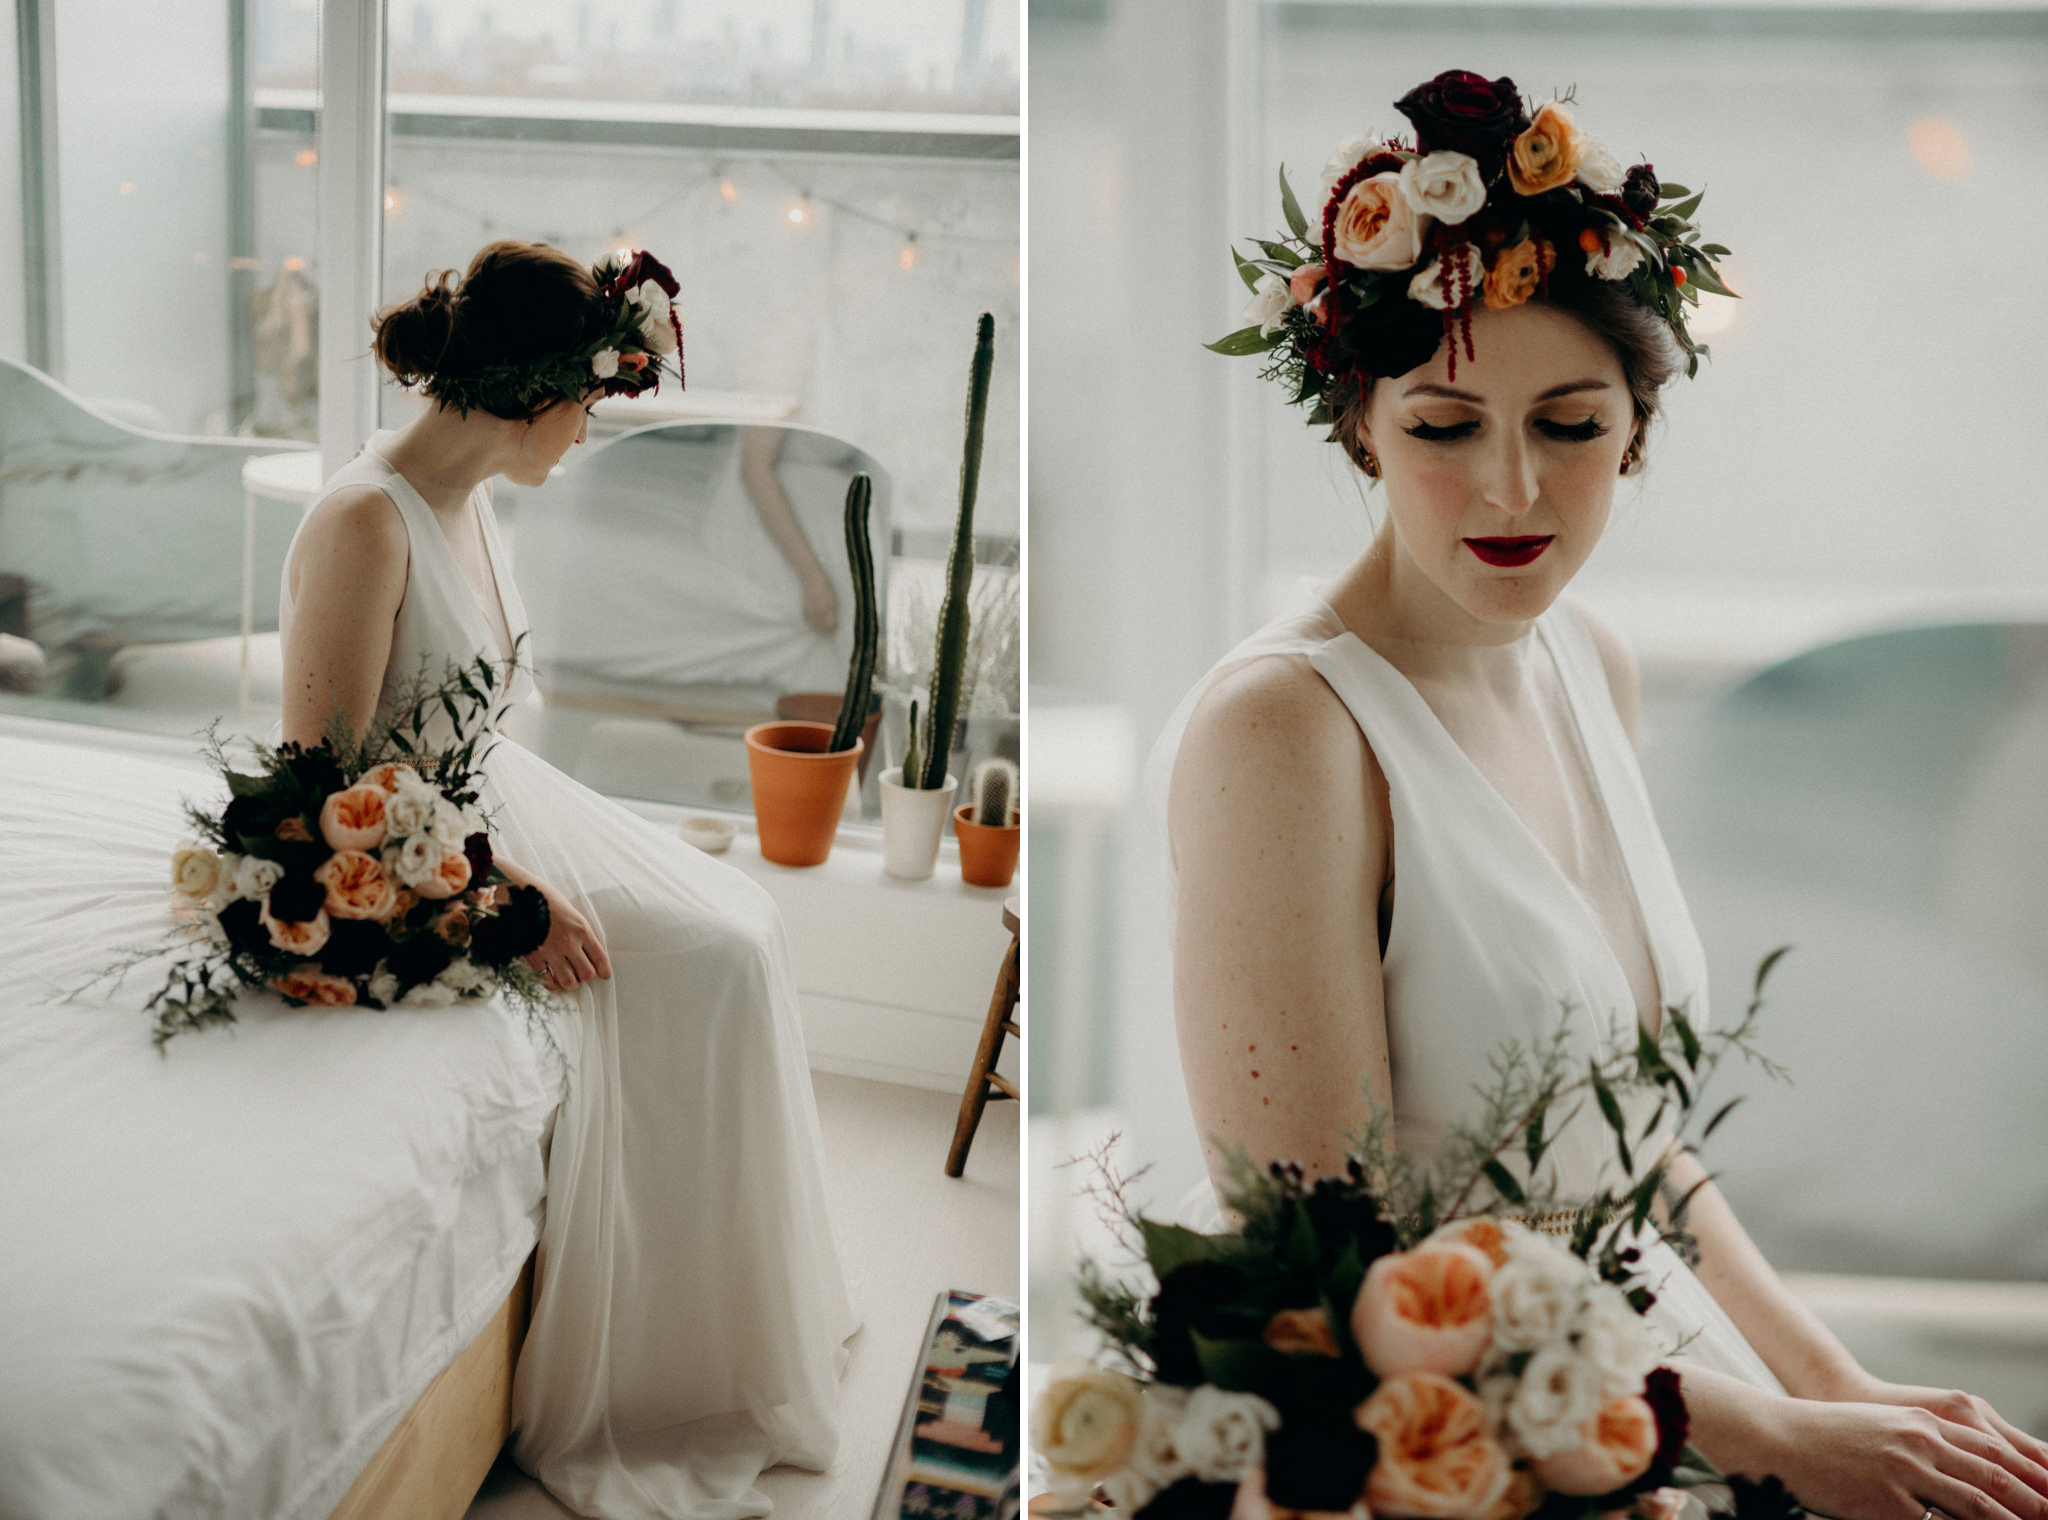 tattooed bride holding bouquet in bedroom